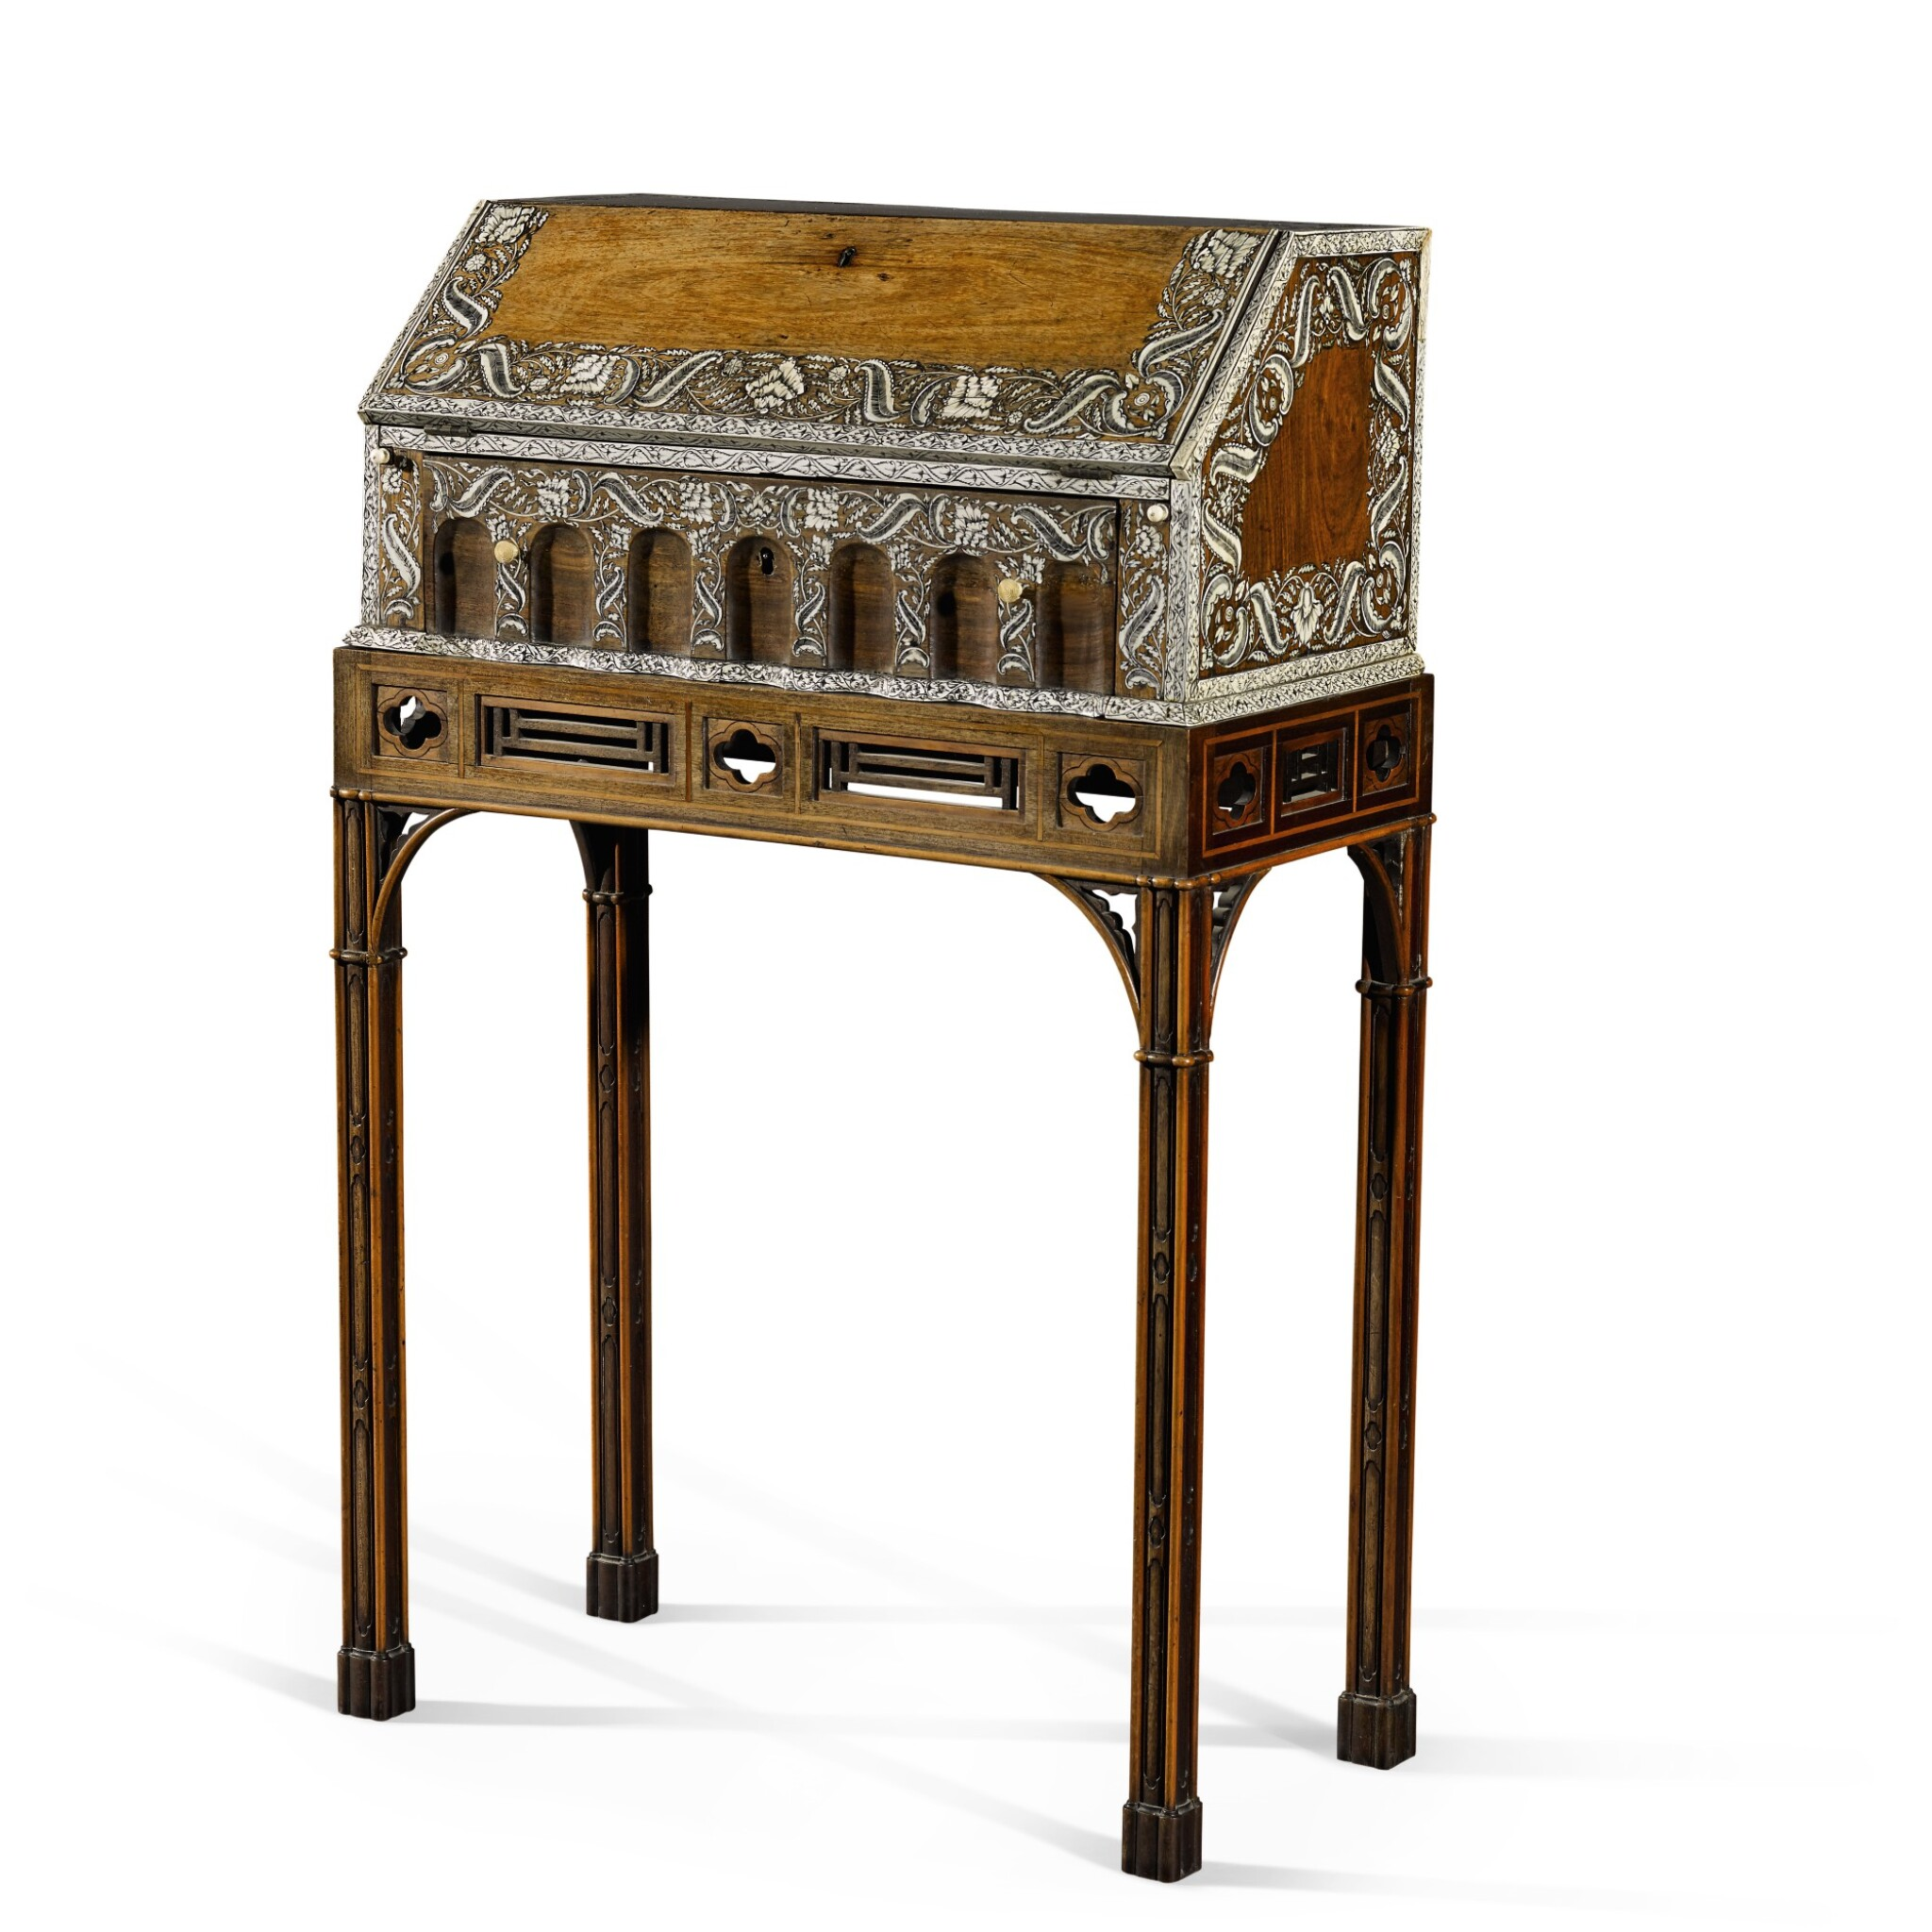 View full screen - View 1 of Lot 246. An Anglo-Indian rosewood and ivory inlaid table bureau on a mahogany and fruitwood stand by Thomas Chippendale, the bureau, Vizagapatam, circa 1740-50, the stand, London, 1767.